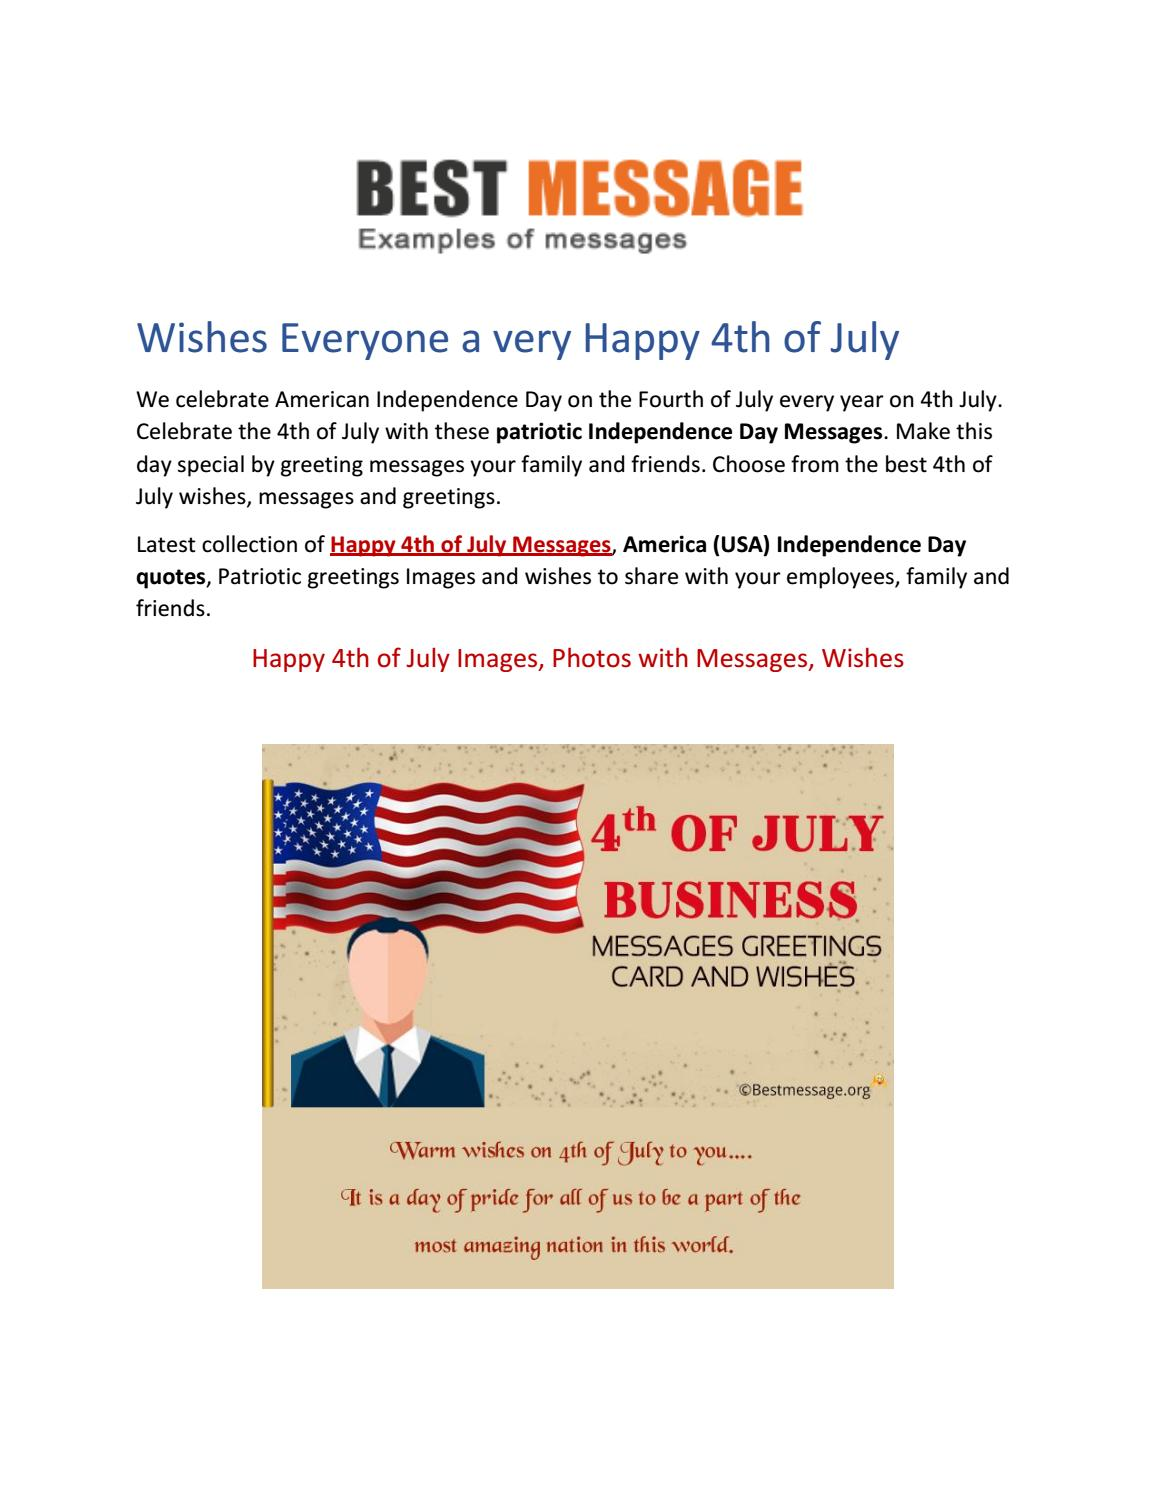 happy th of messages usa independence day messages wishes